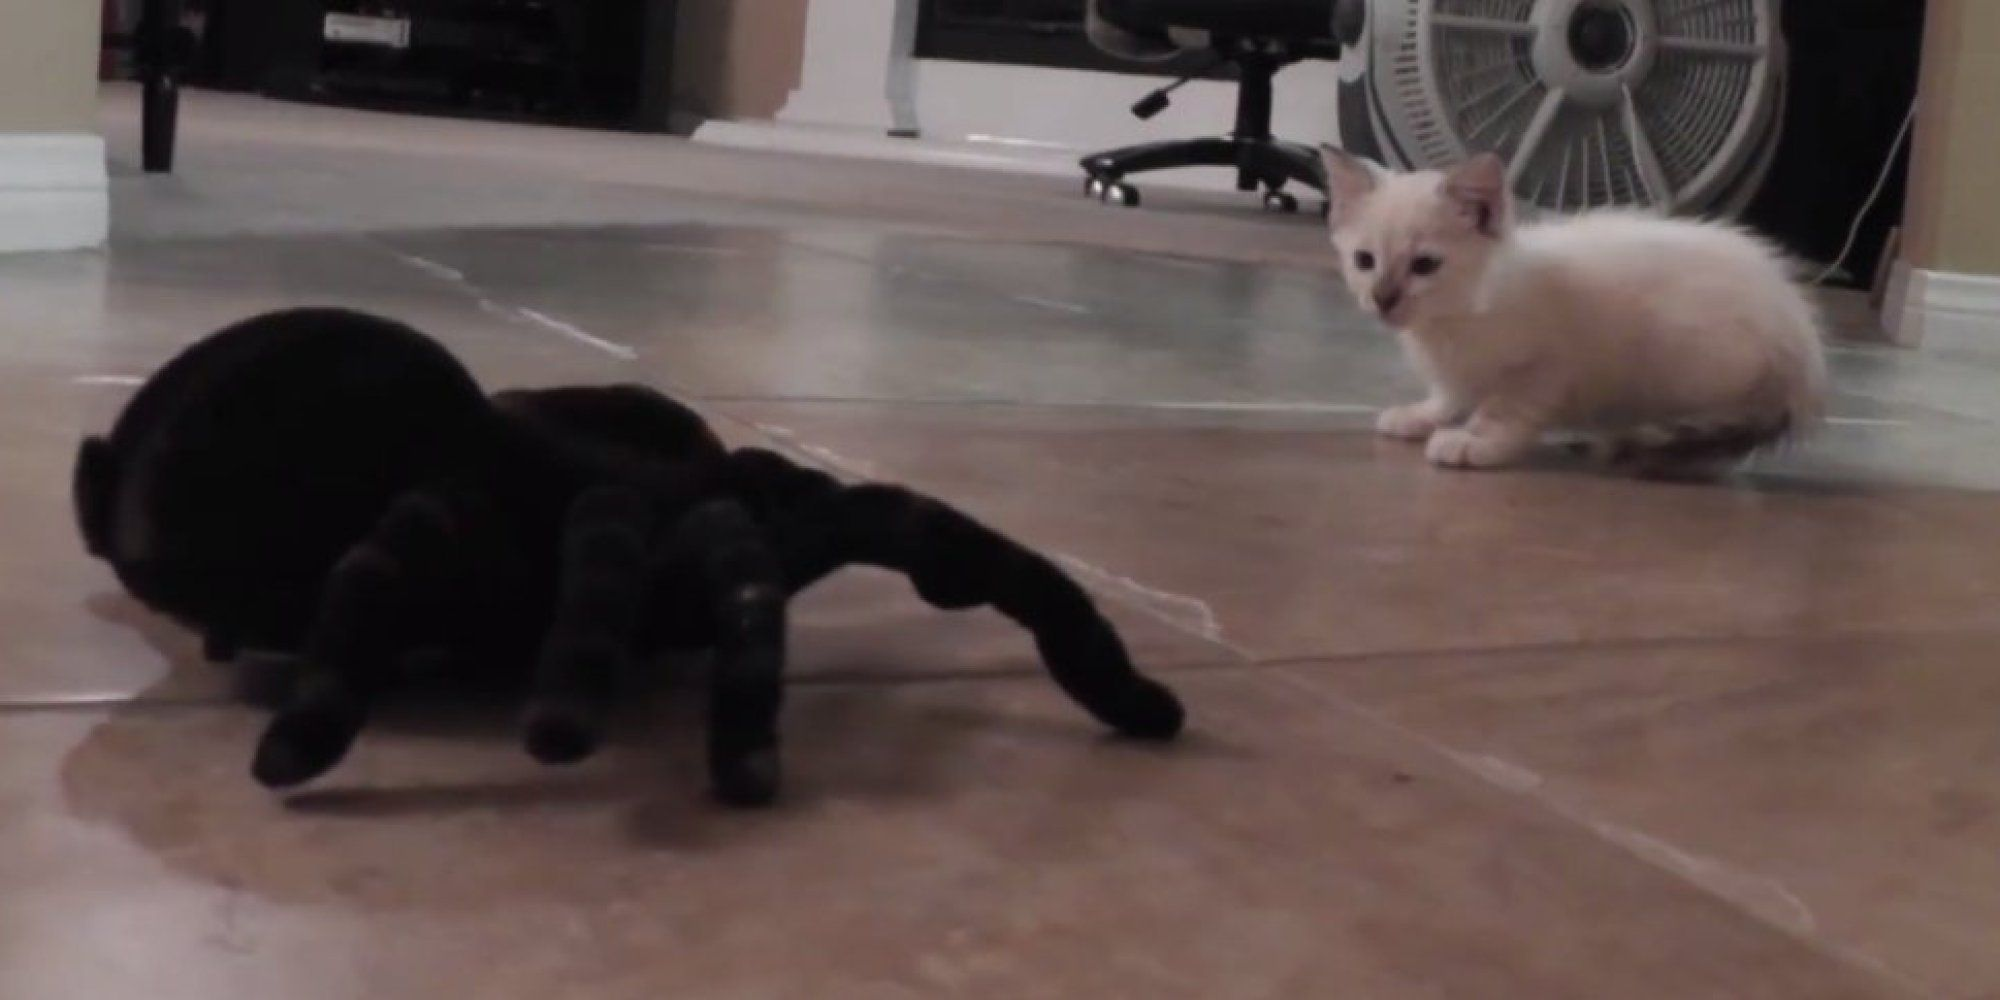 Kitten Takes On Spooky Remote Controlled Spider Buy A Cat Kitten Funny Cat Videos